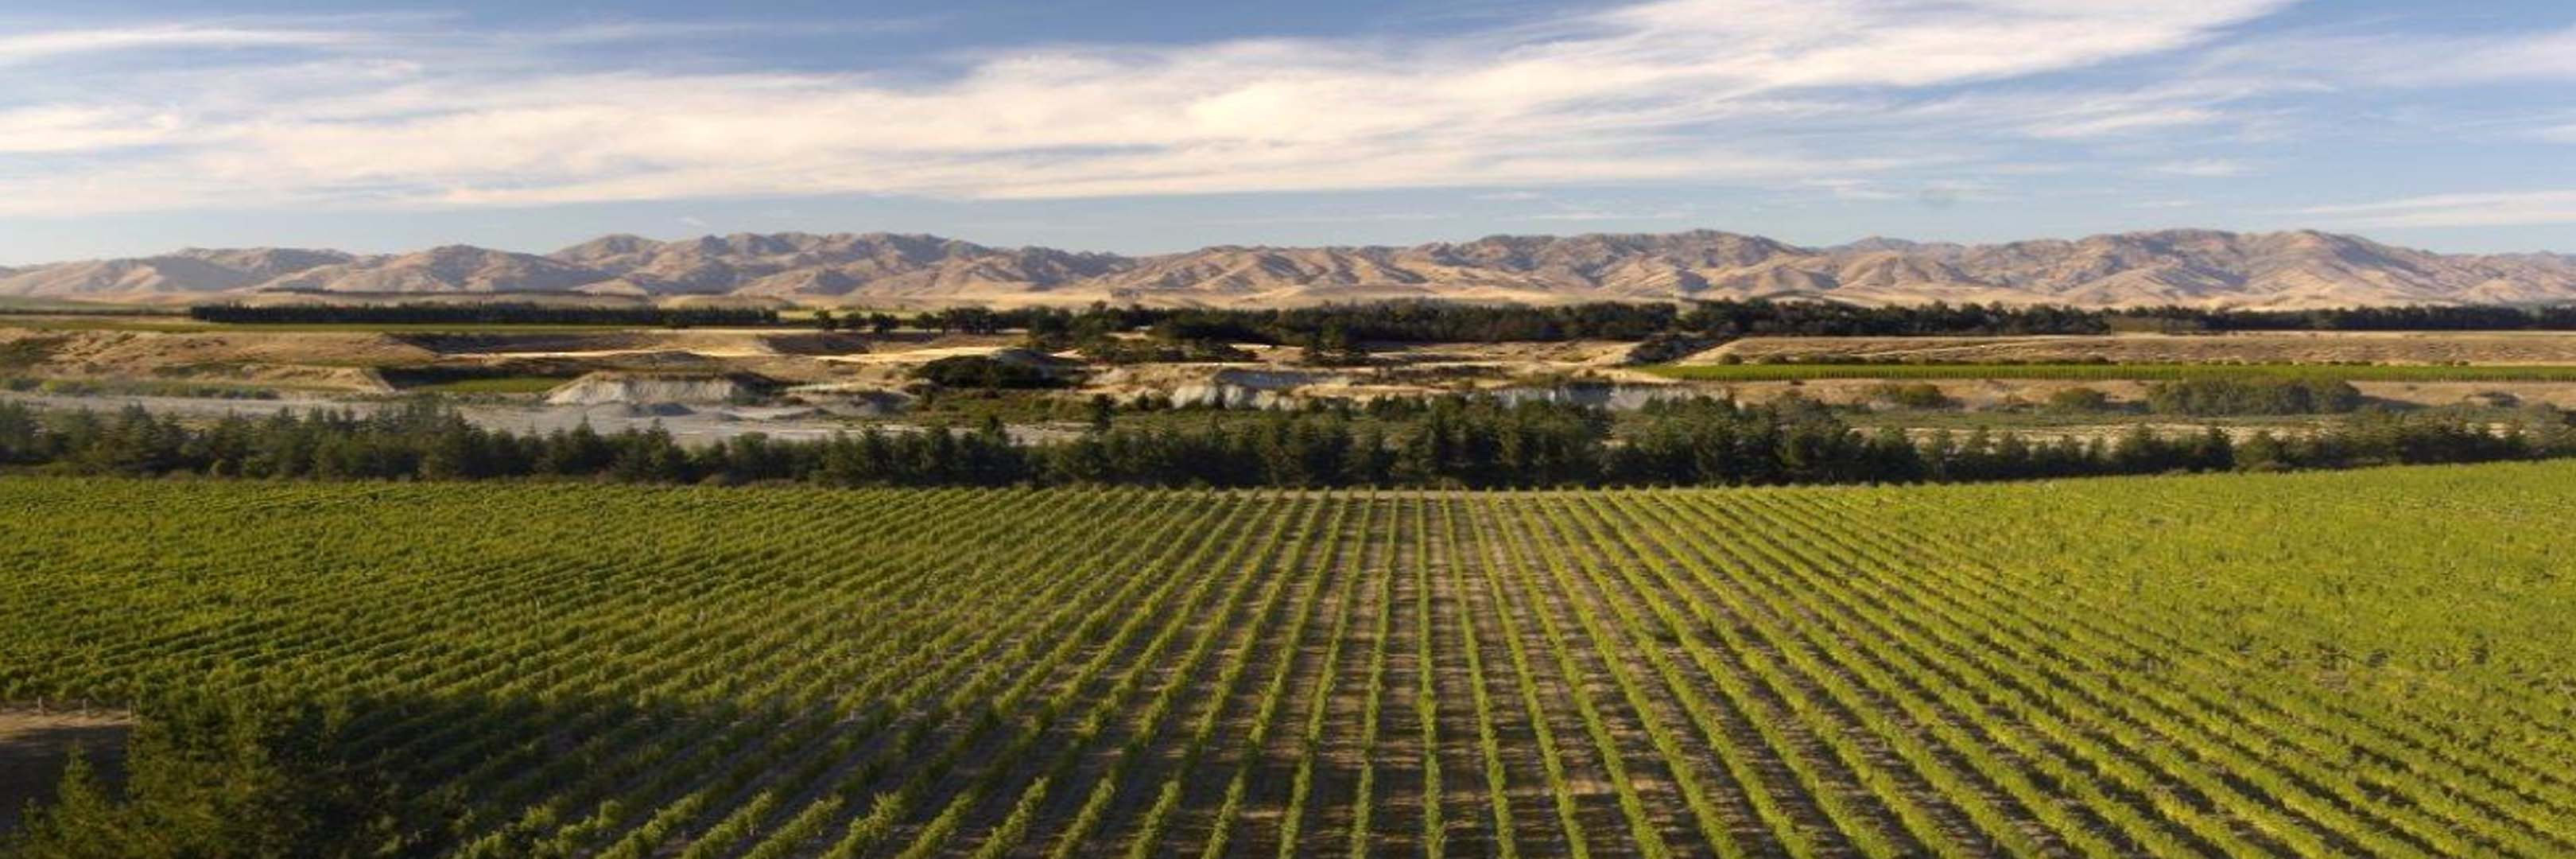 Cloudy Bay Vineyards - Cloudy Bay Vineyards New Zealand wines available on Winery Philippines